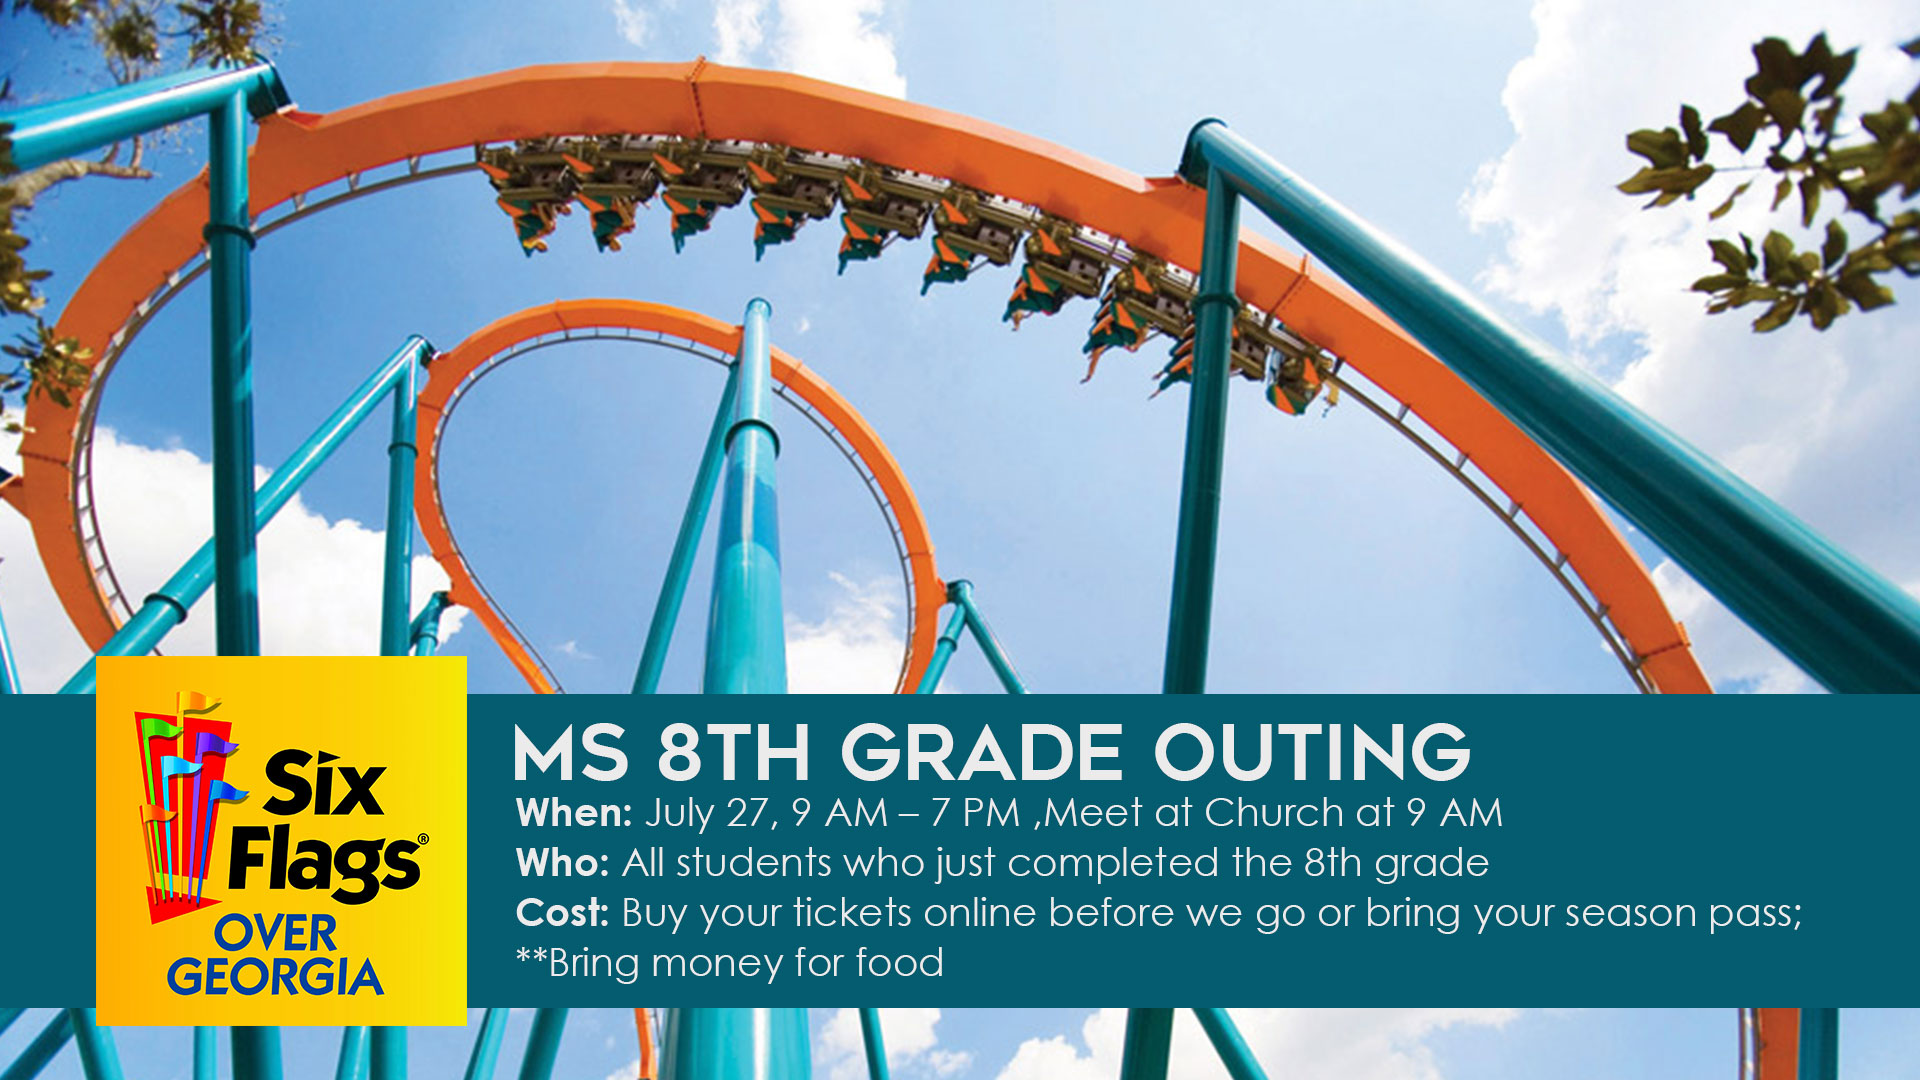 MS 8th Grade Outing @ Six Flags: July 27